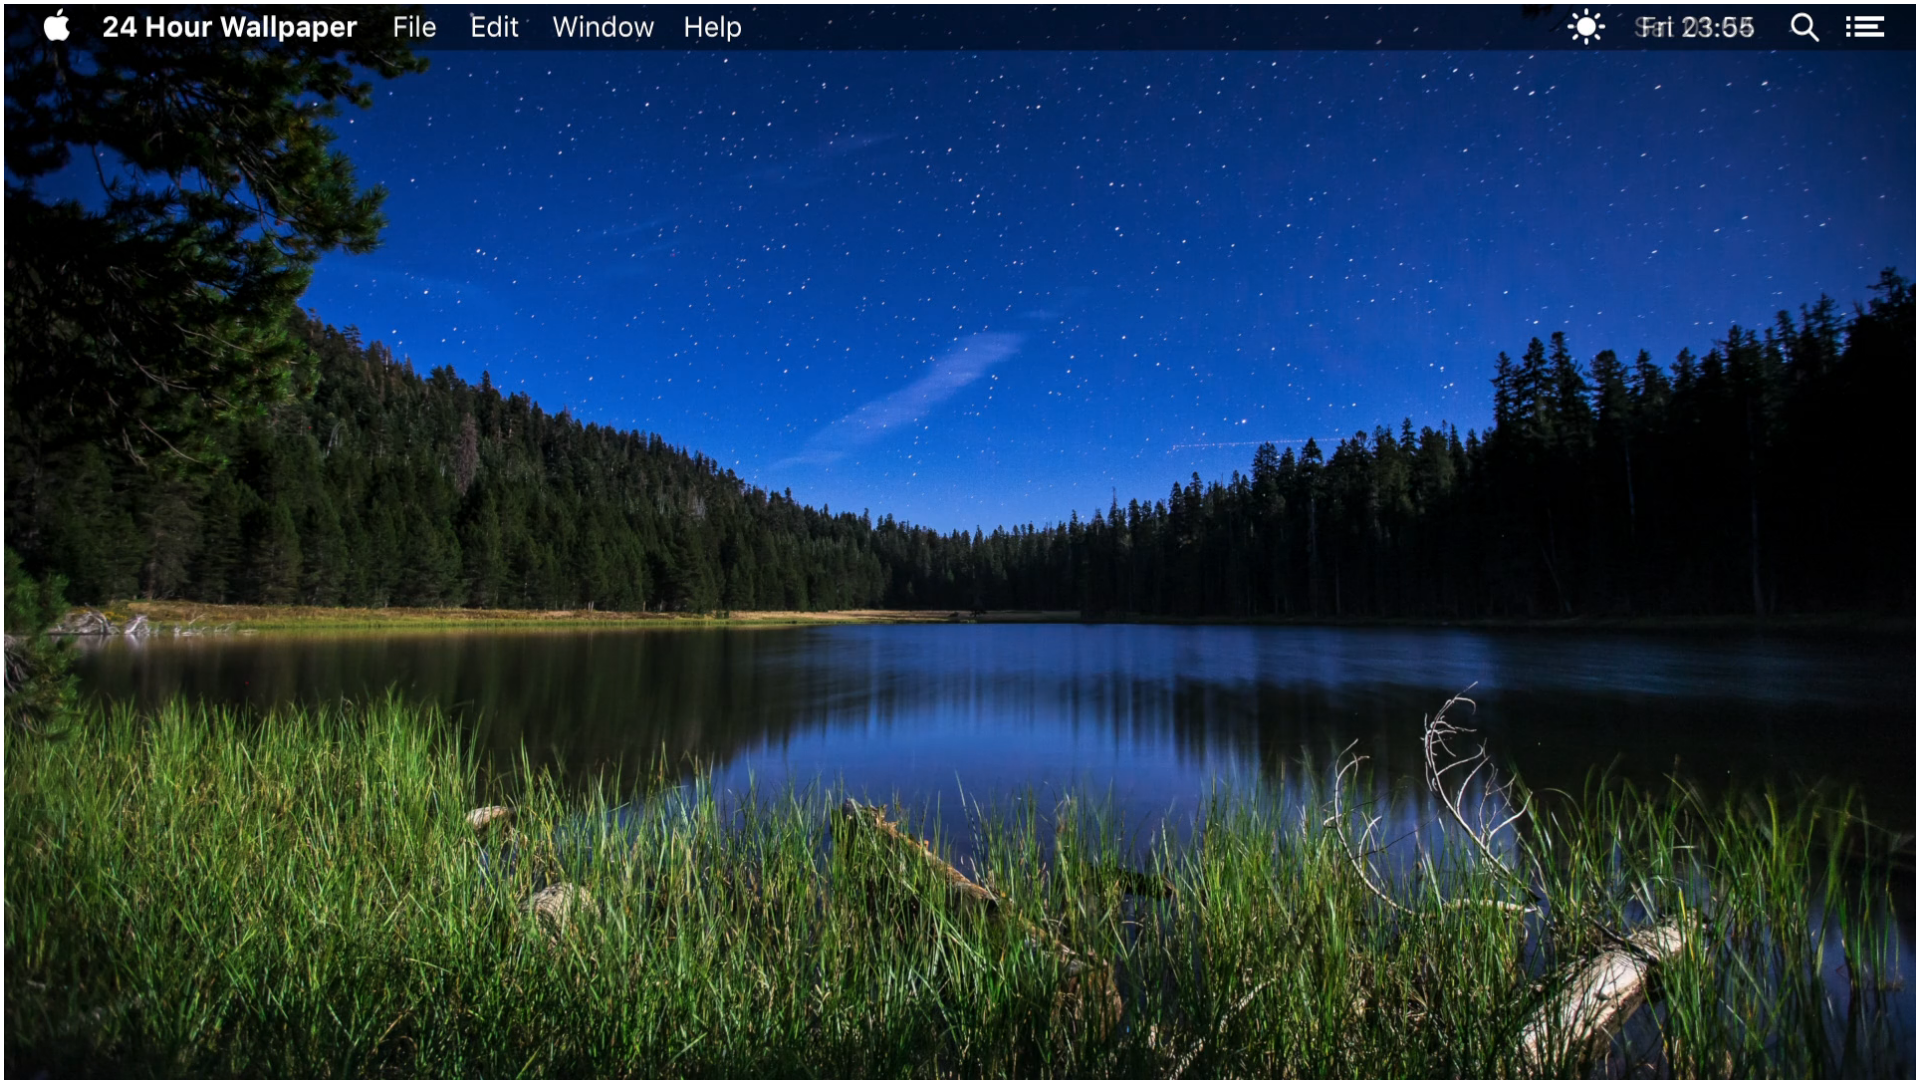 24 Hour Wallpaper 2 0 2 free download - Software reviews